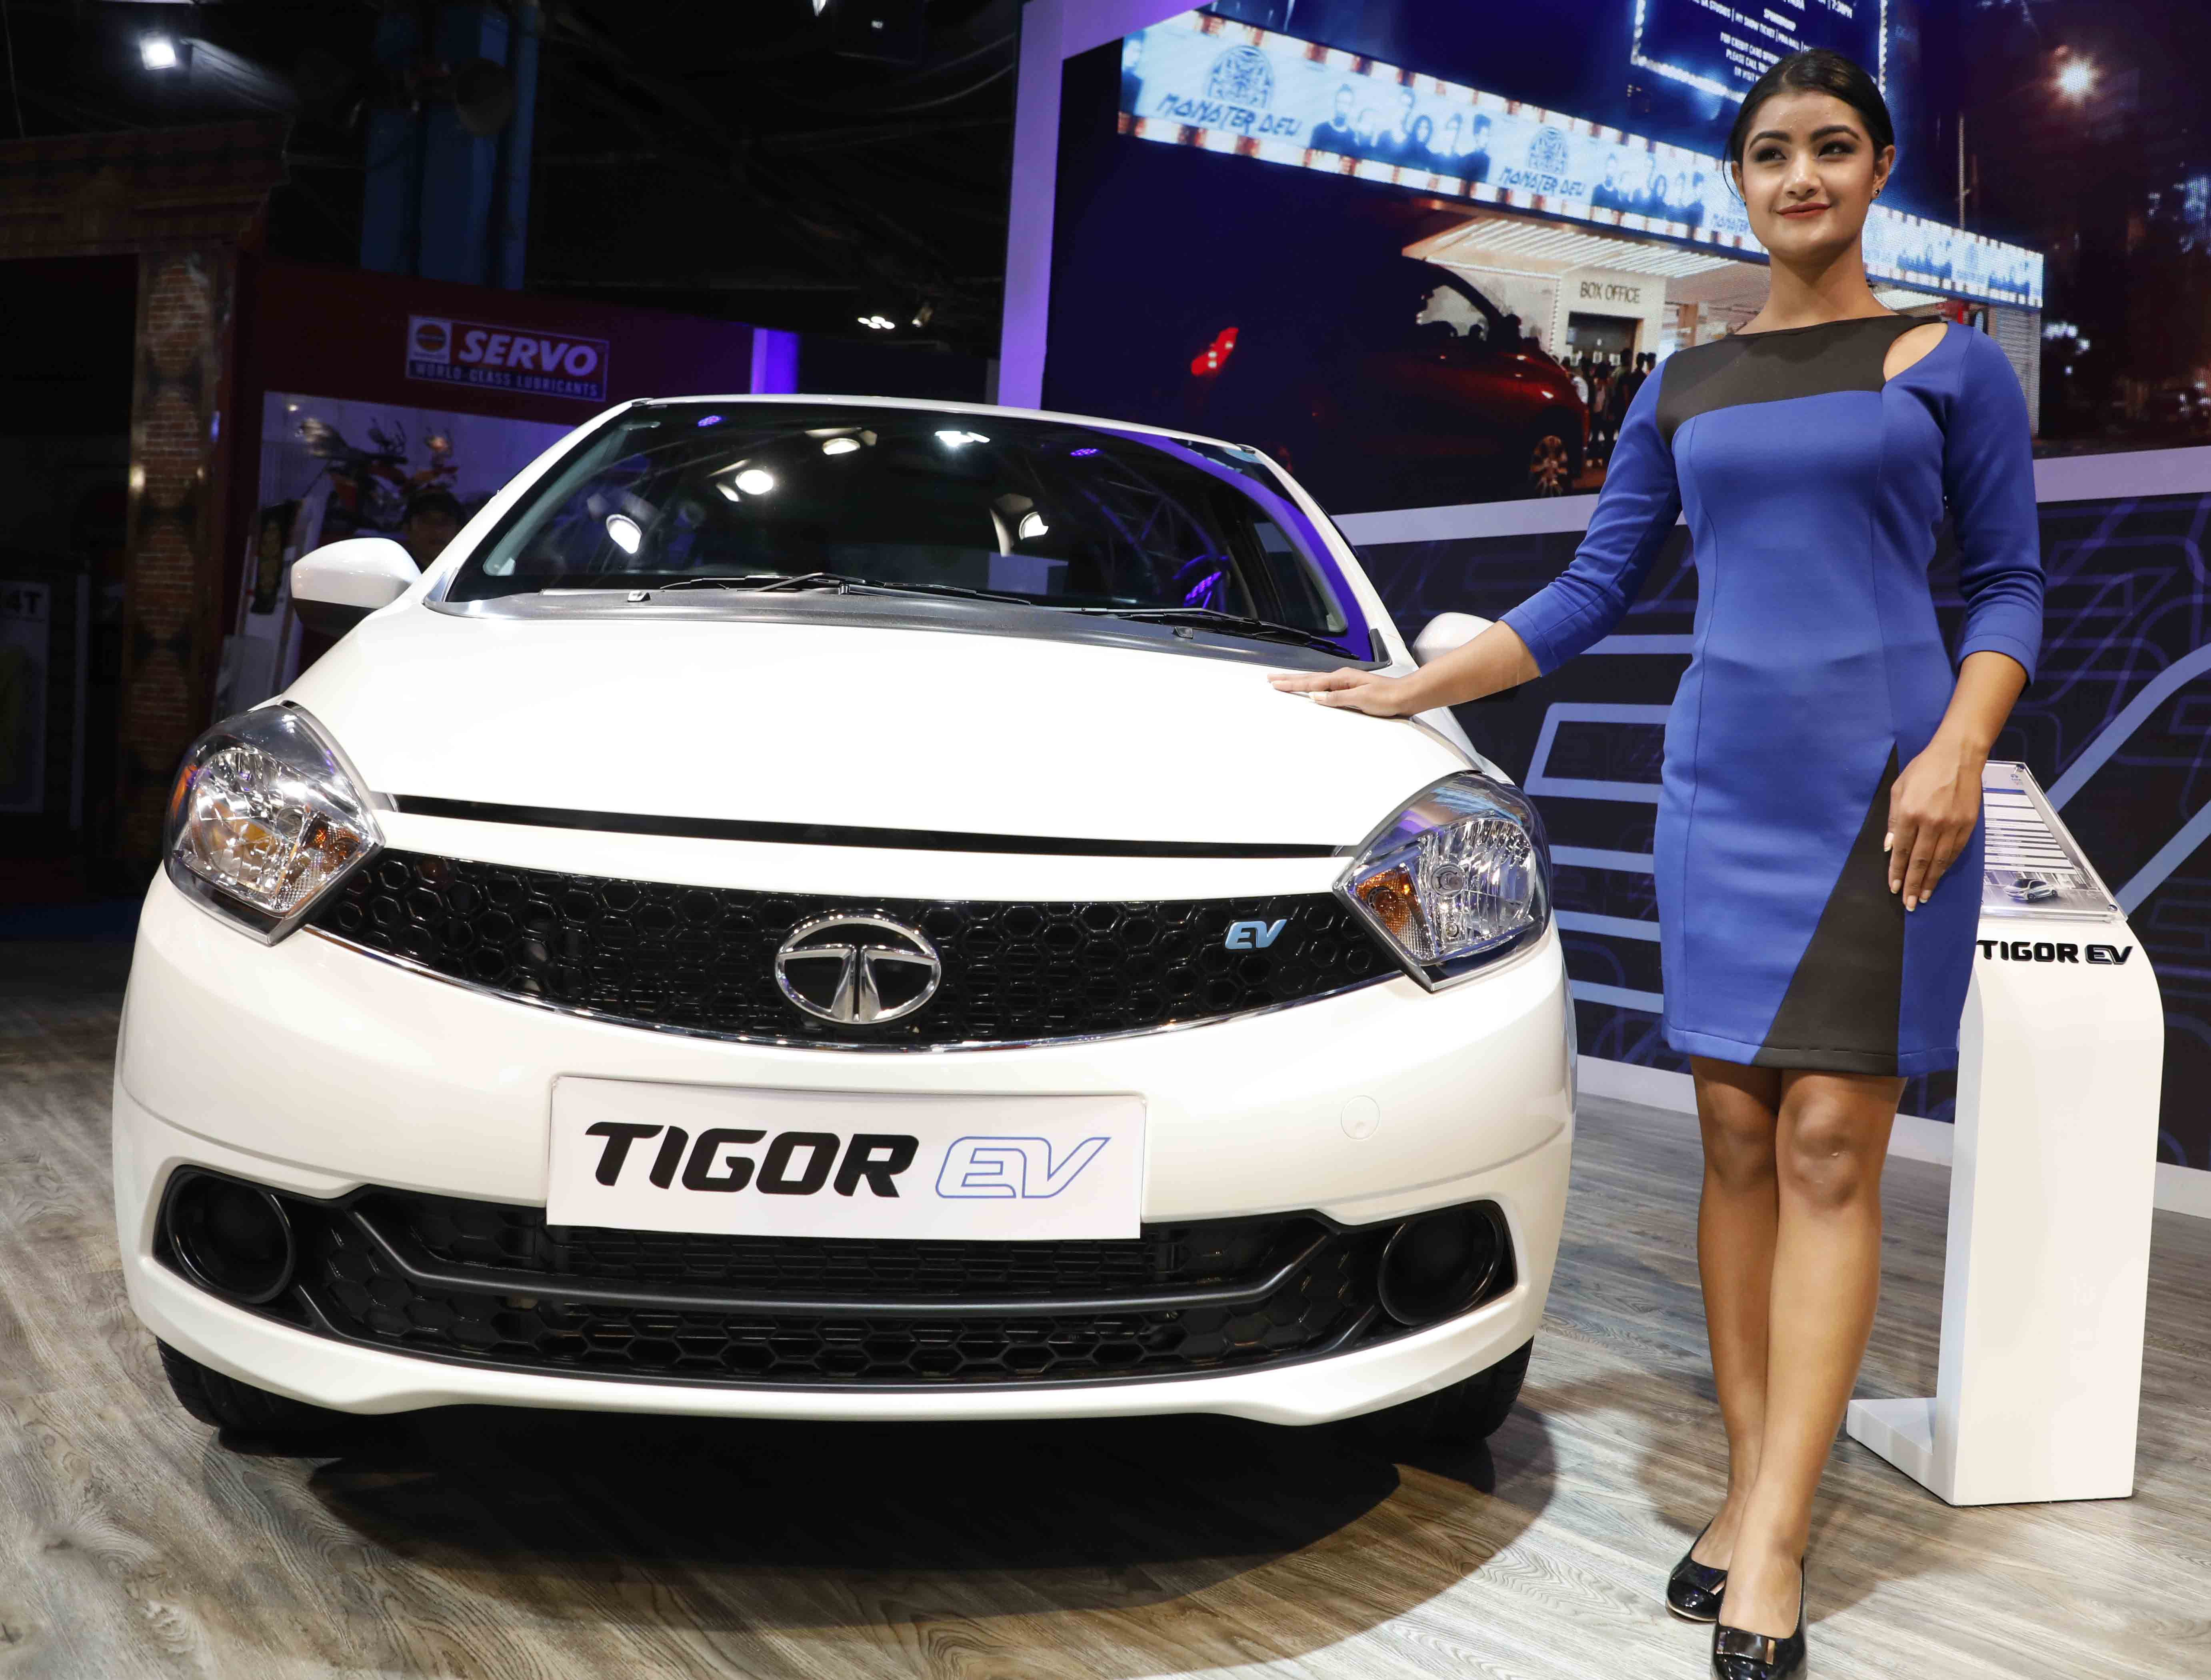 Prices Of Vehicles In NADA Auto Show ICT Frame Technology - Auto show prices